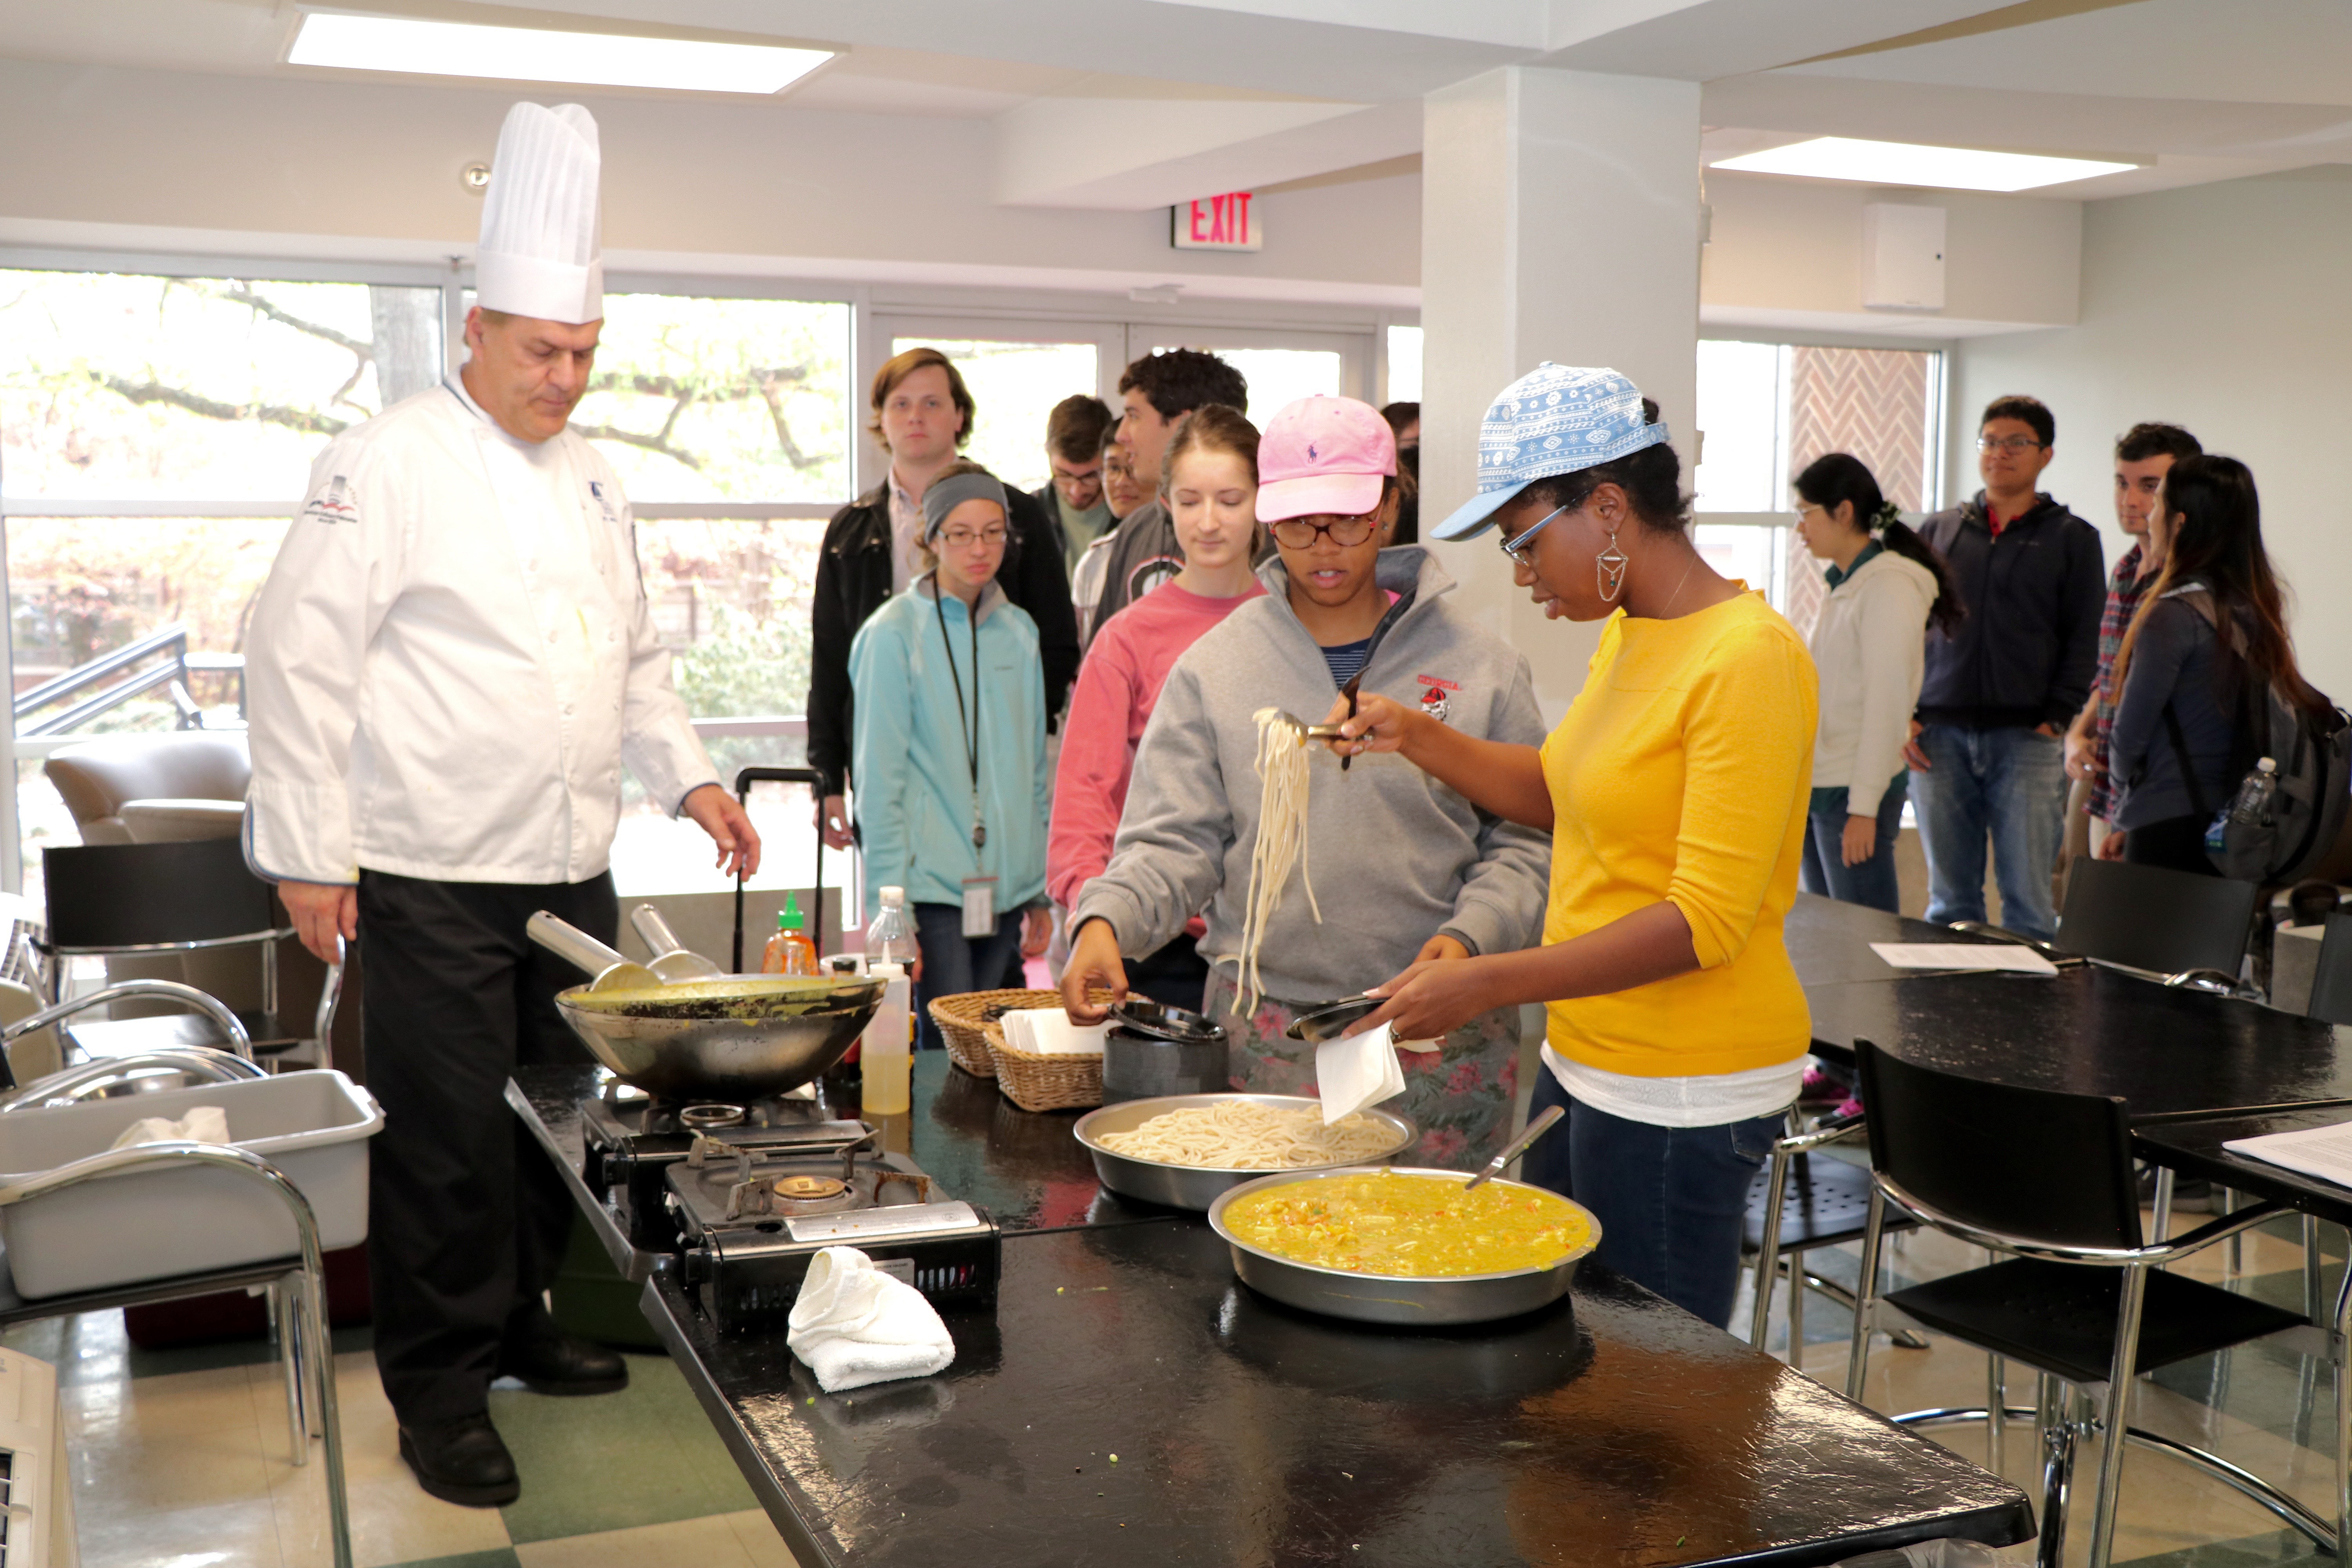 """Chef Steve Ingersoll, an instructor at the College of Coastal Georgia, demonstrates one of his favorite curry recipes during a visit to the University of Georgia Department of Food Science and Technology to promote the college's new """"Intensive Culinary Experience"""" May term."""